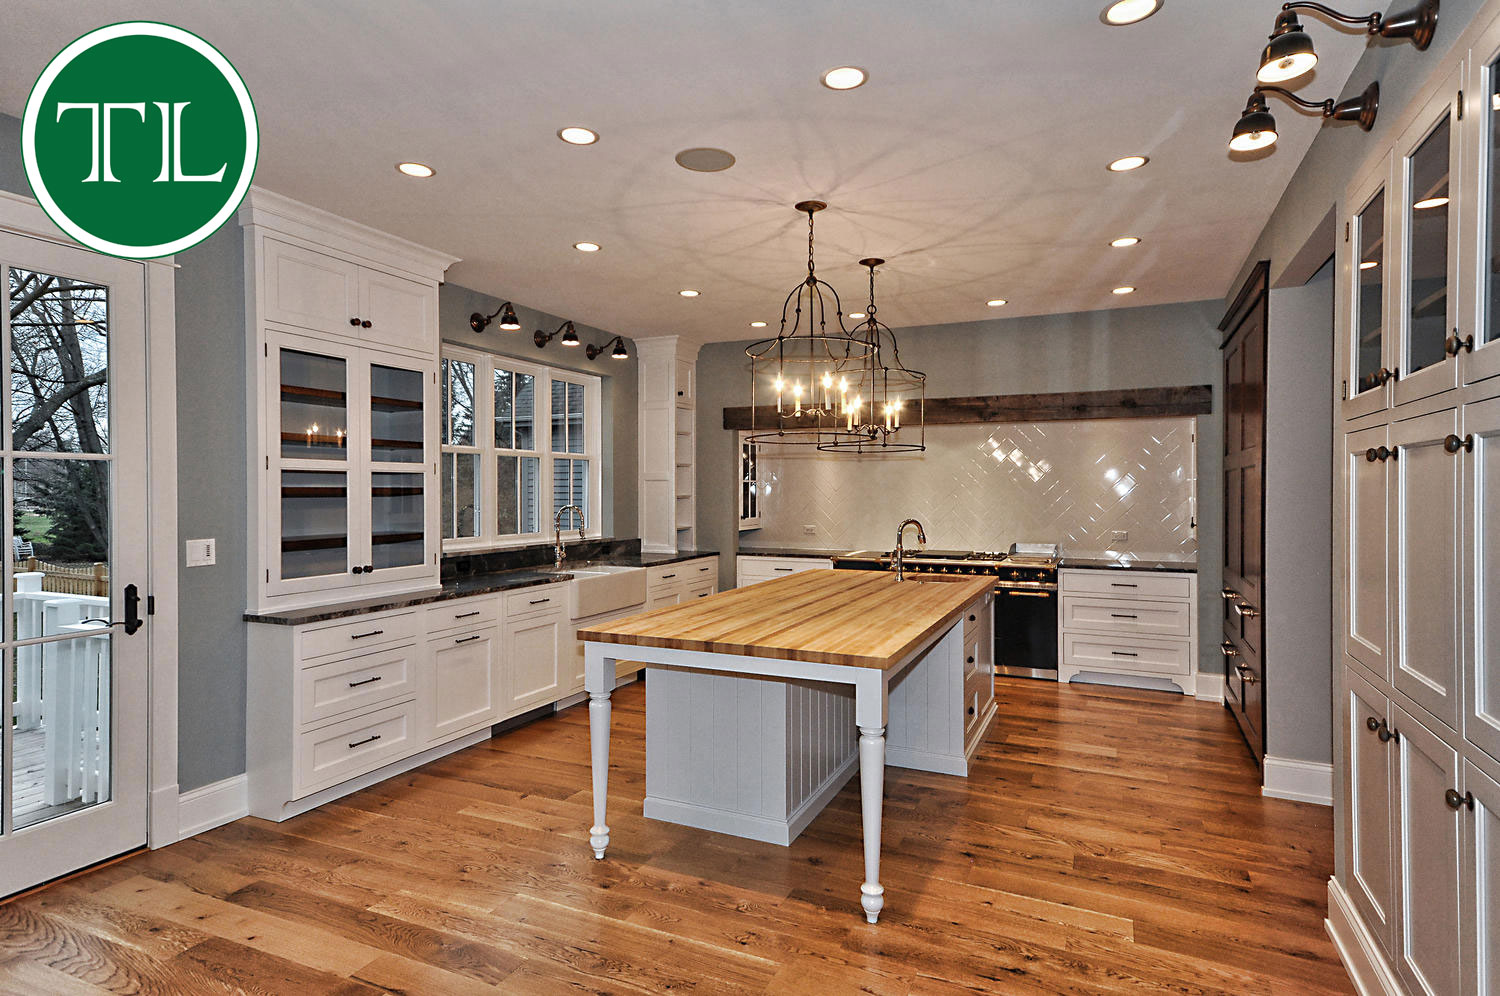 Tom Len Custom Homes - Center